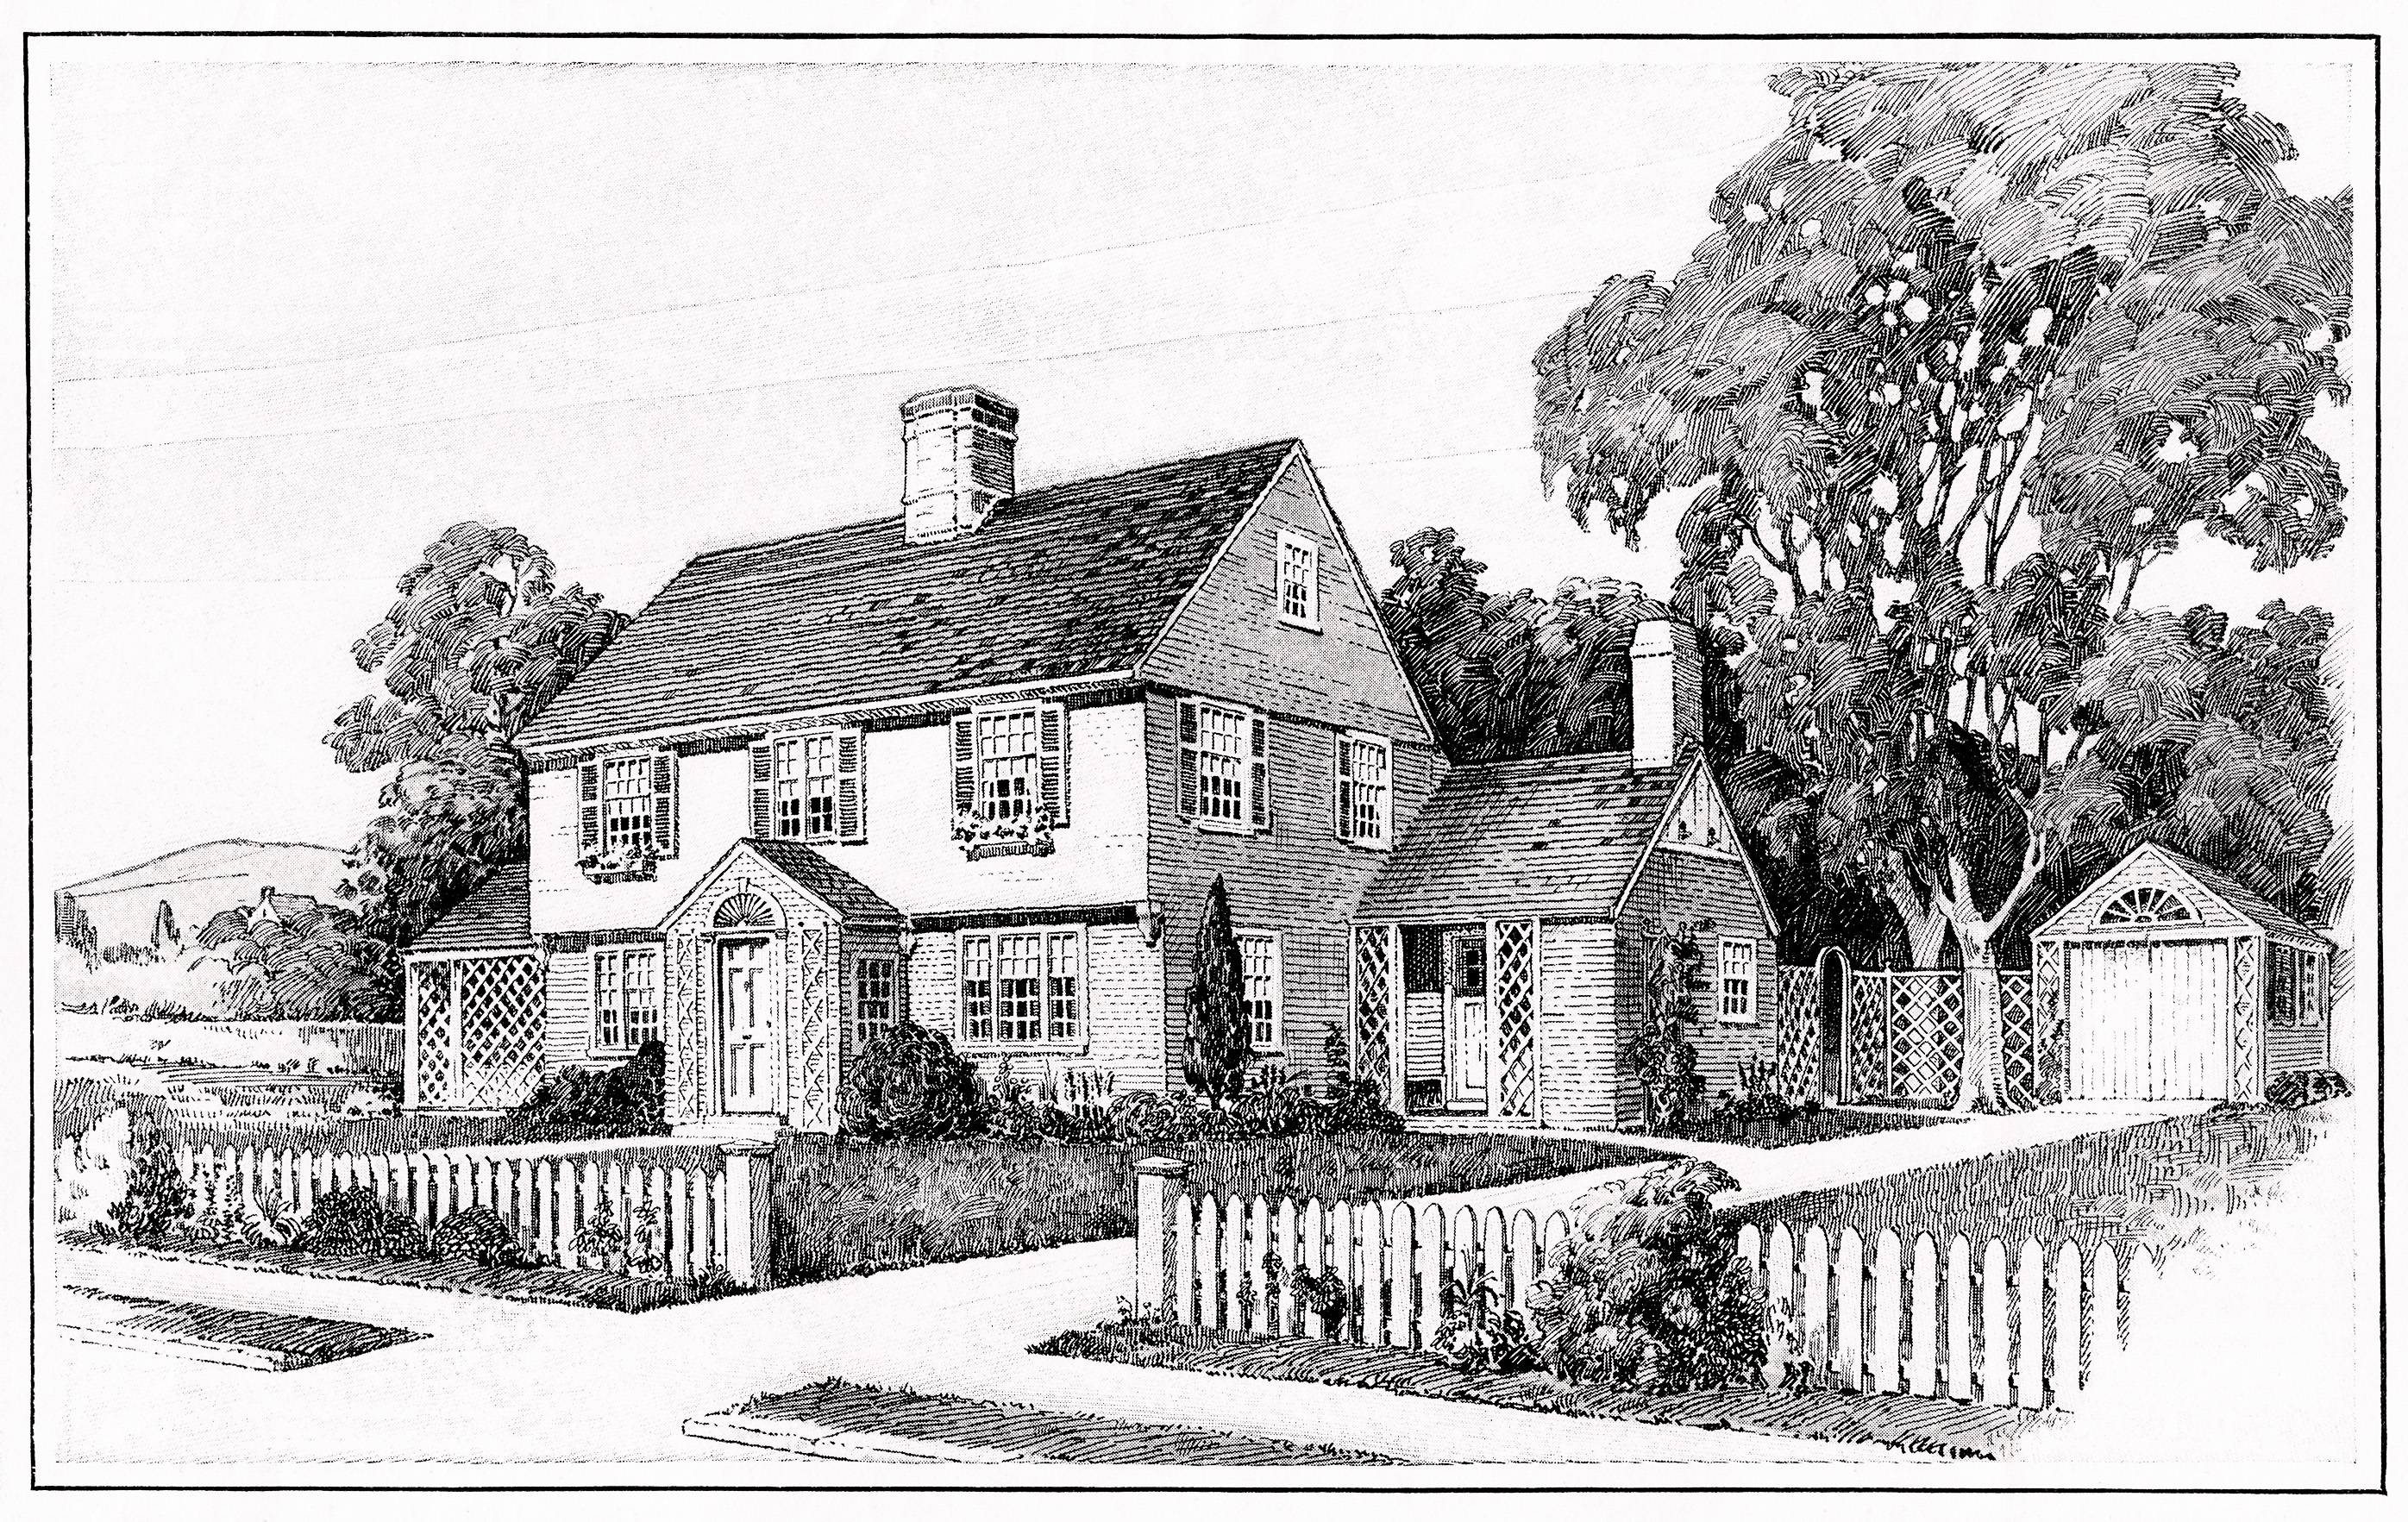 Vintage House and Floor Plans Clip Art.